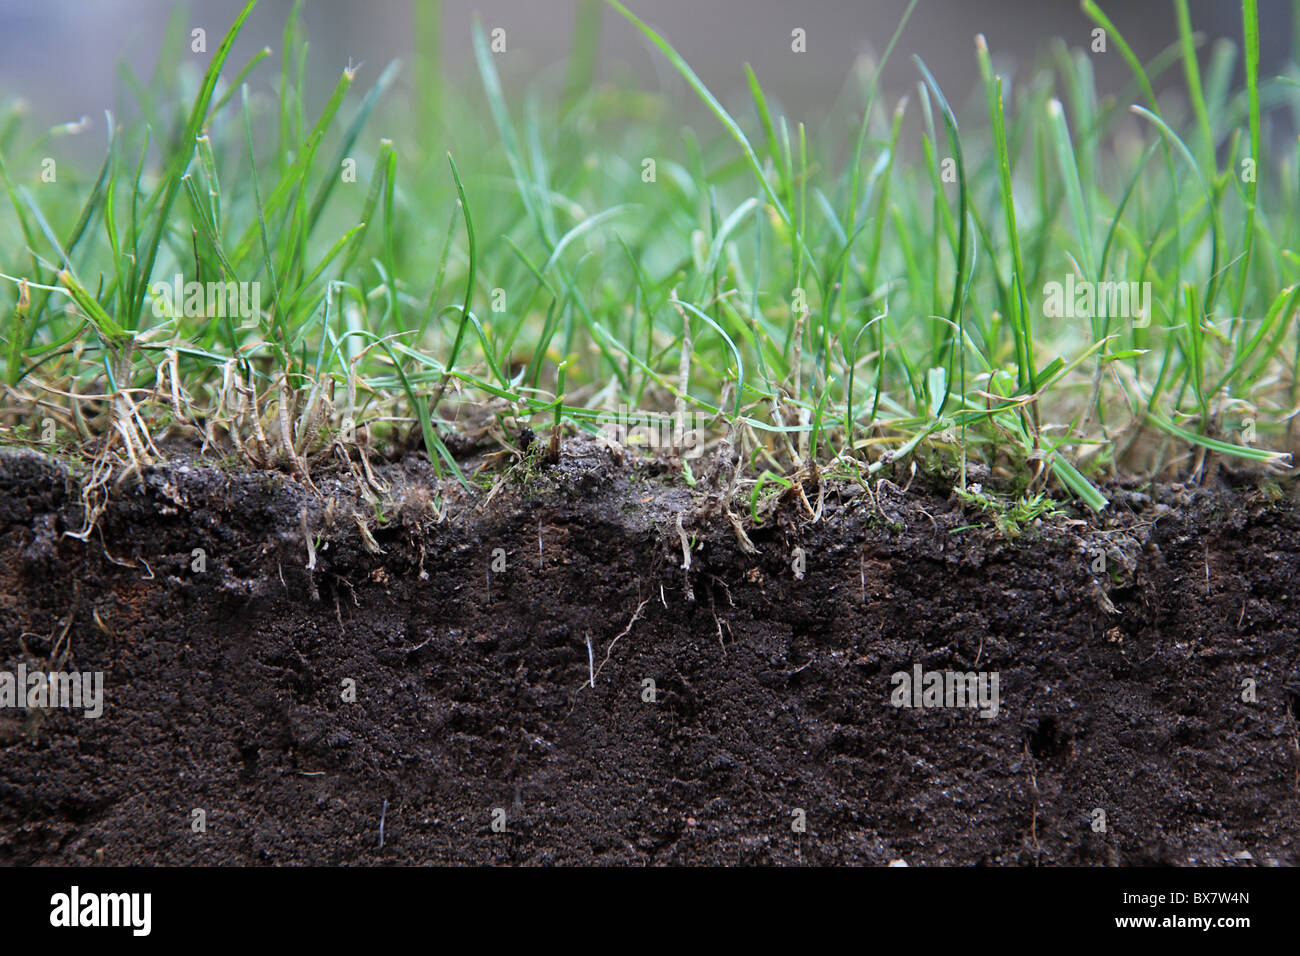 Profile of lawn and ground. - Stock Image